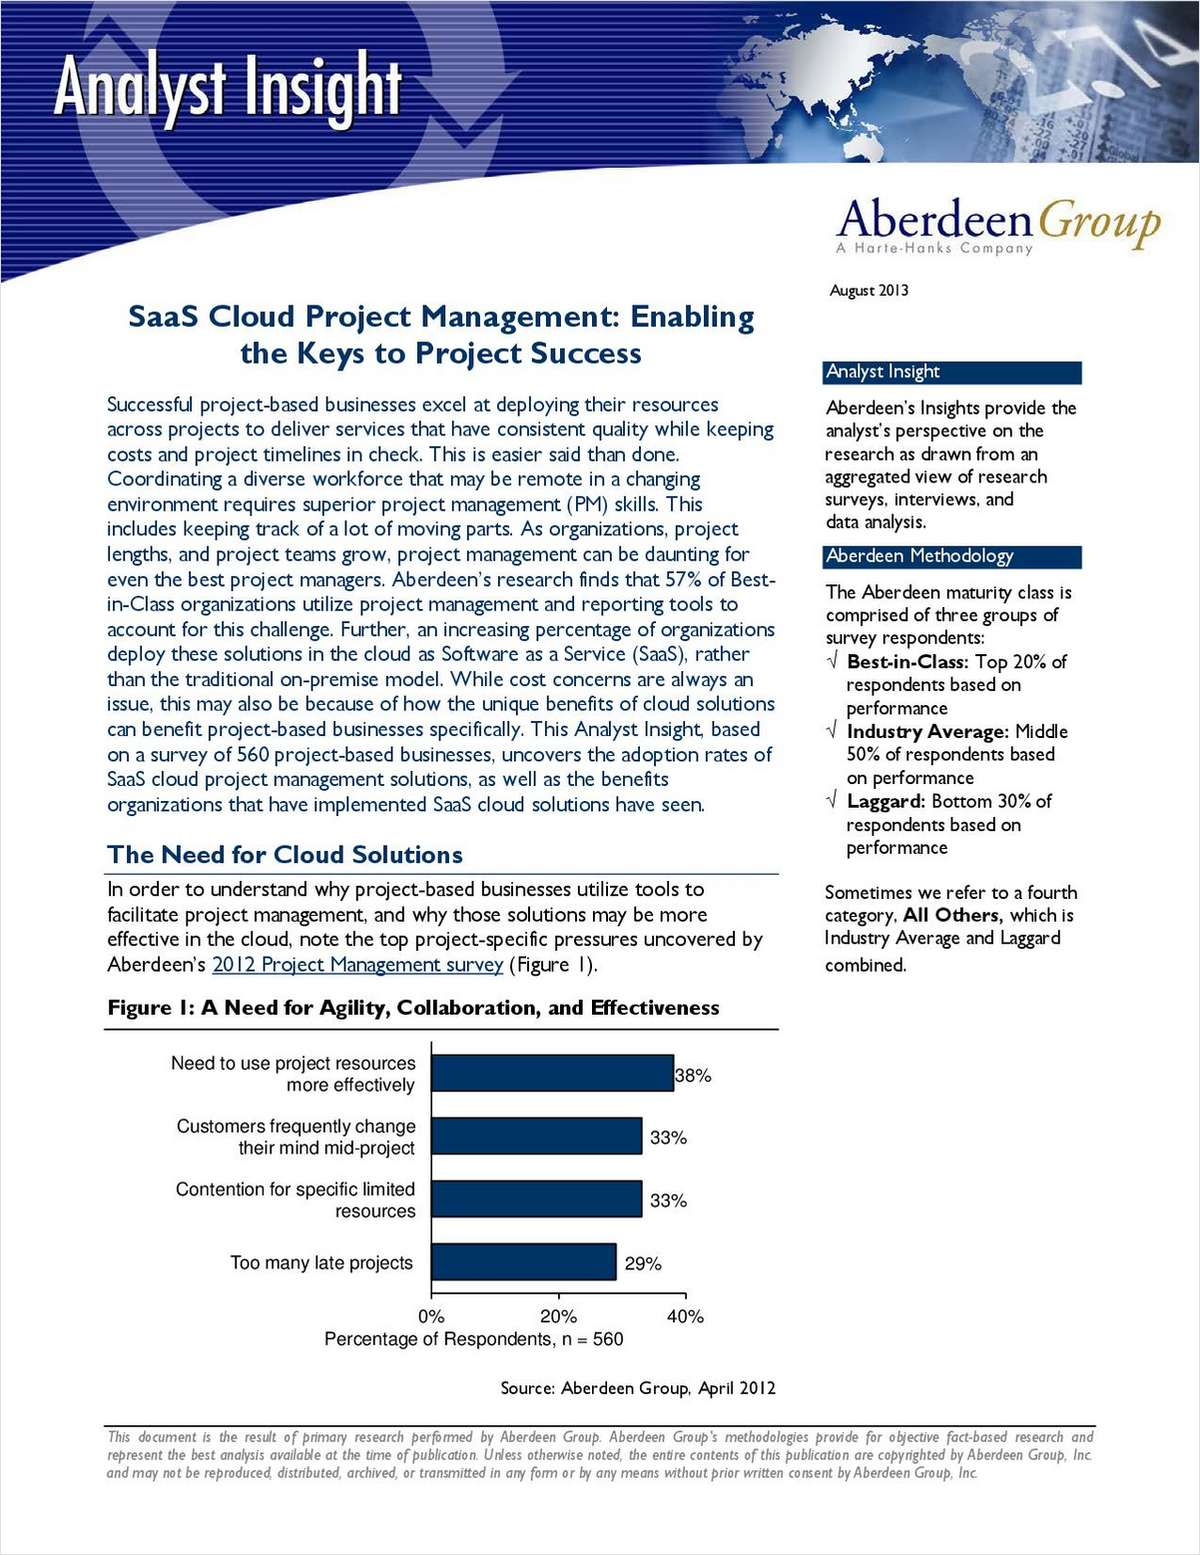 SaaS Cloud Project Management: Enabling the Keys to Project Success